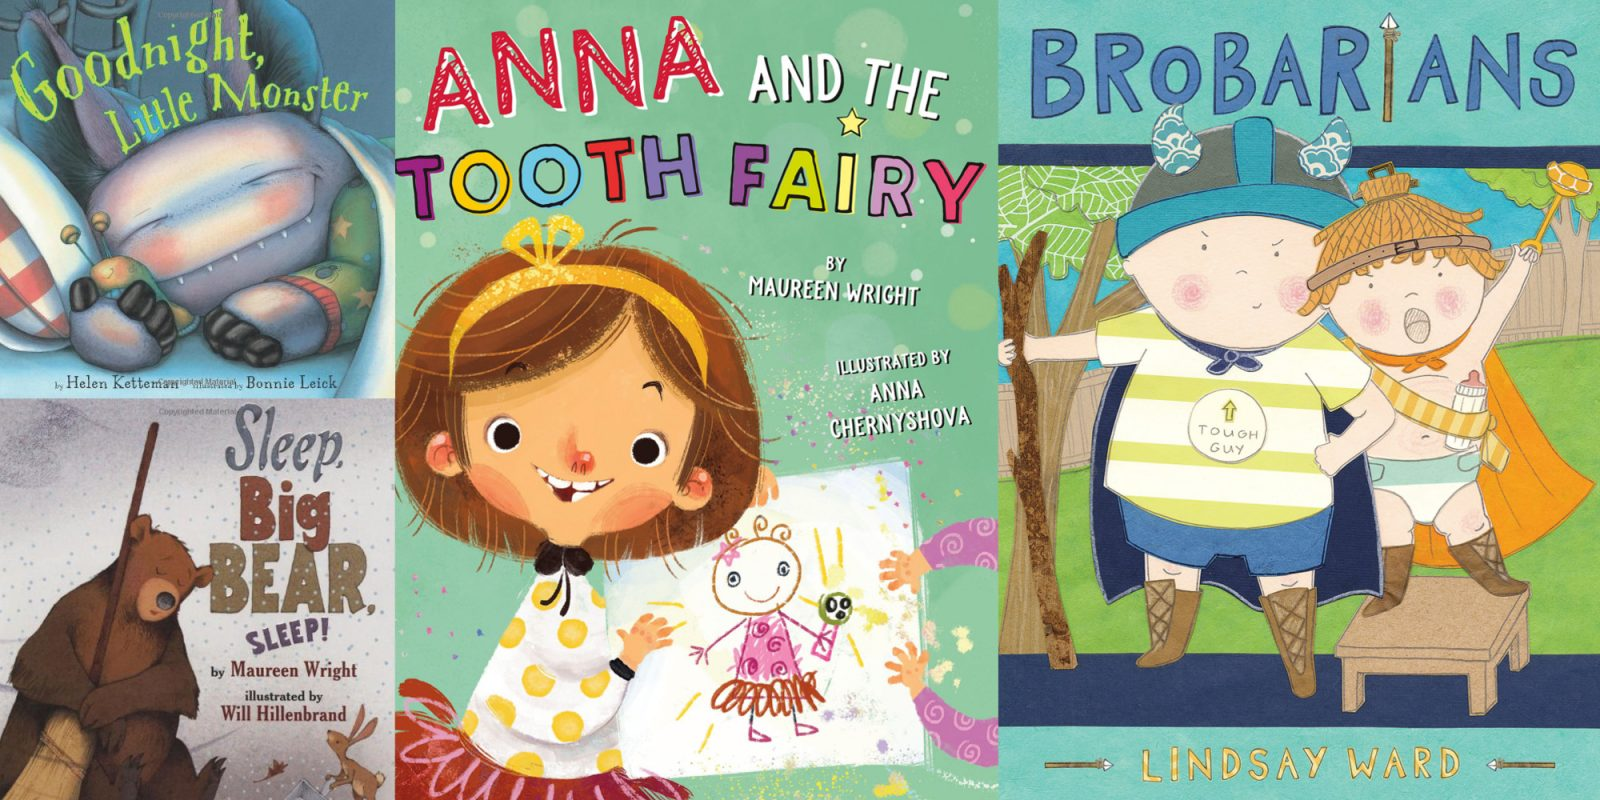 Amazon has best-selling hardcover children's books at $4 or less for Prime Day